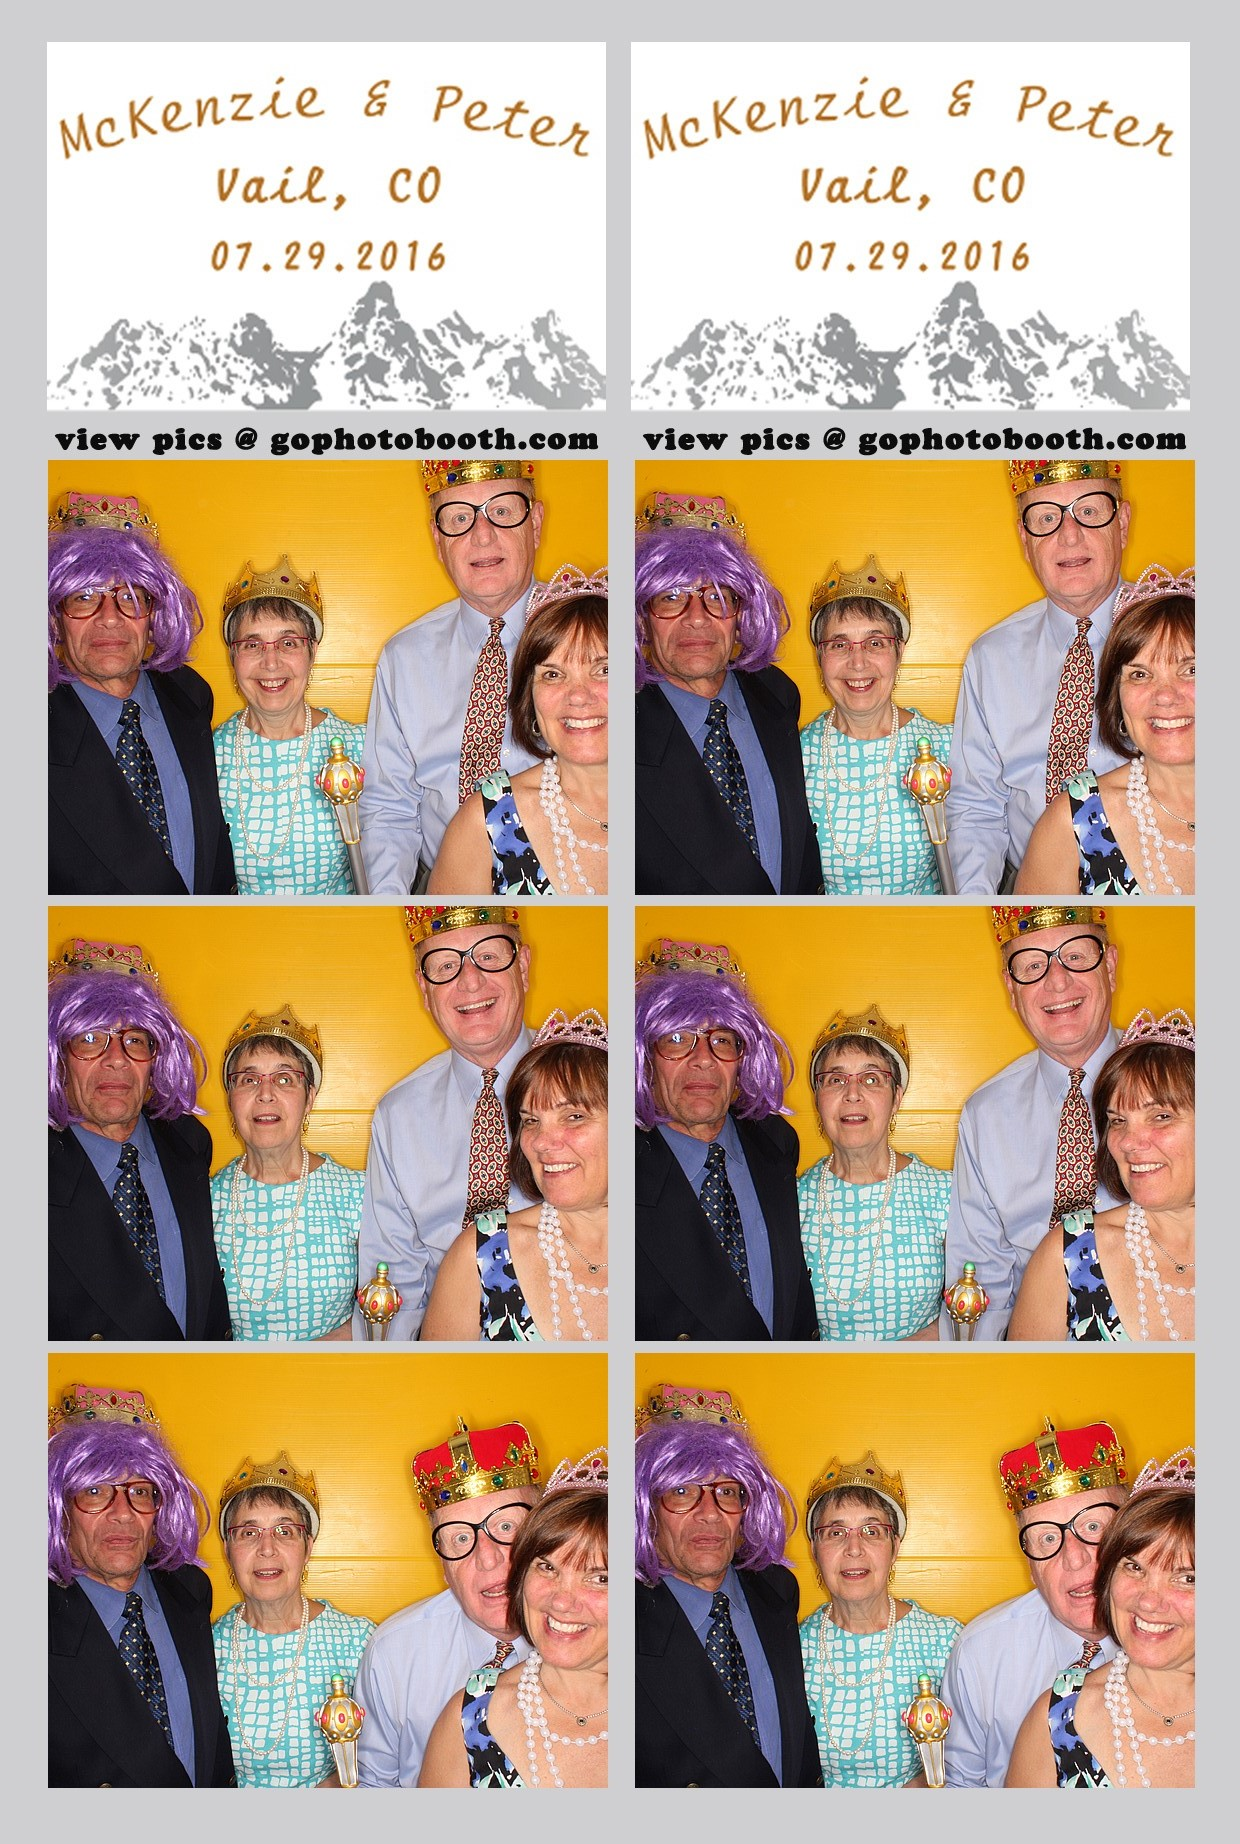 McKenzie & Peter's photo booth Donovan Vail 07/29/16